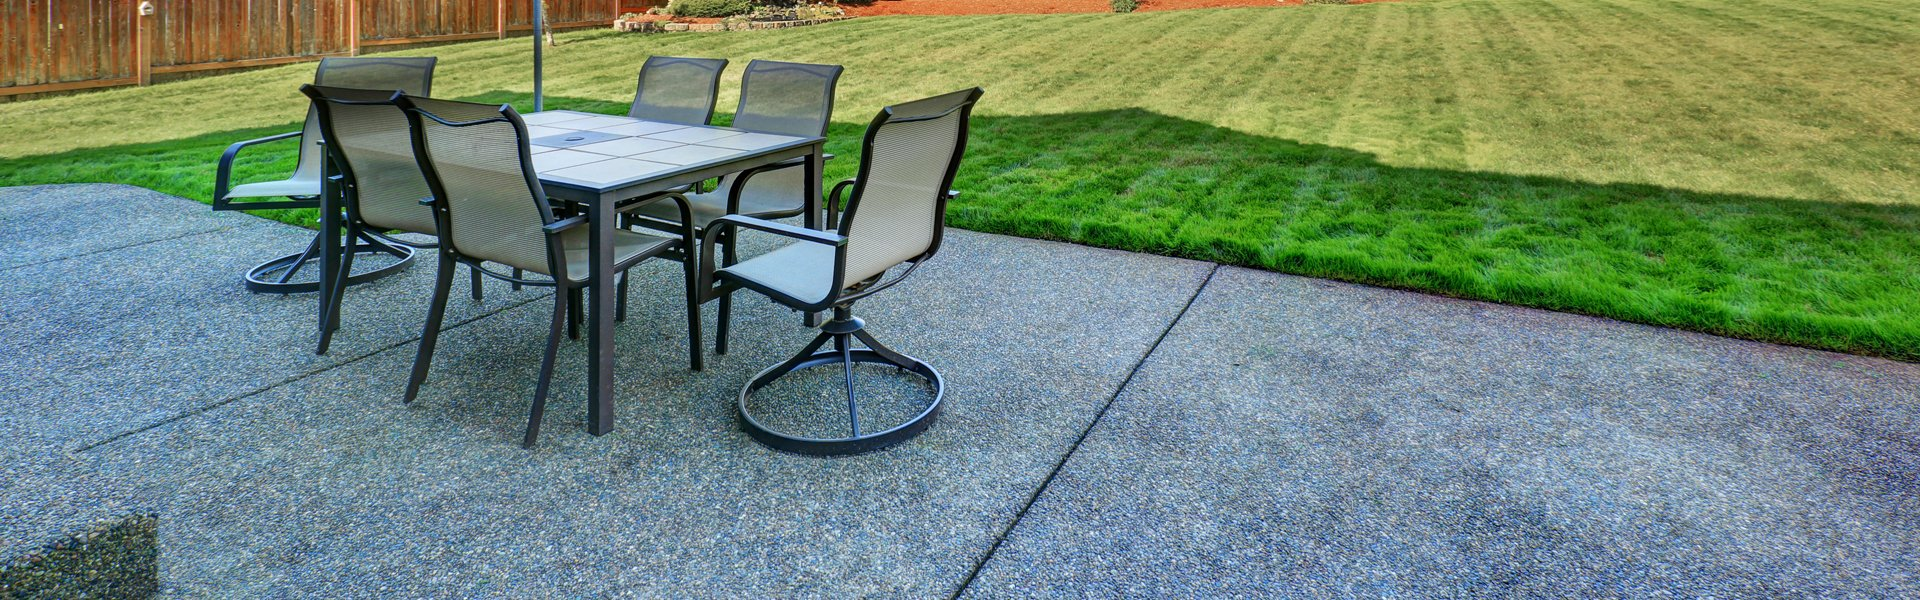 Outdoor dining furniture on a patio beside a striped lawn